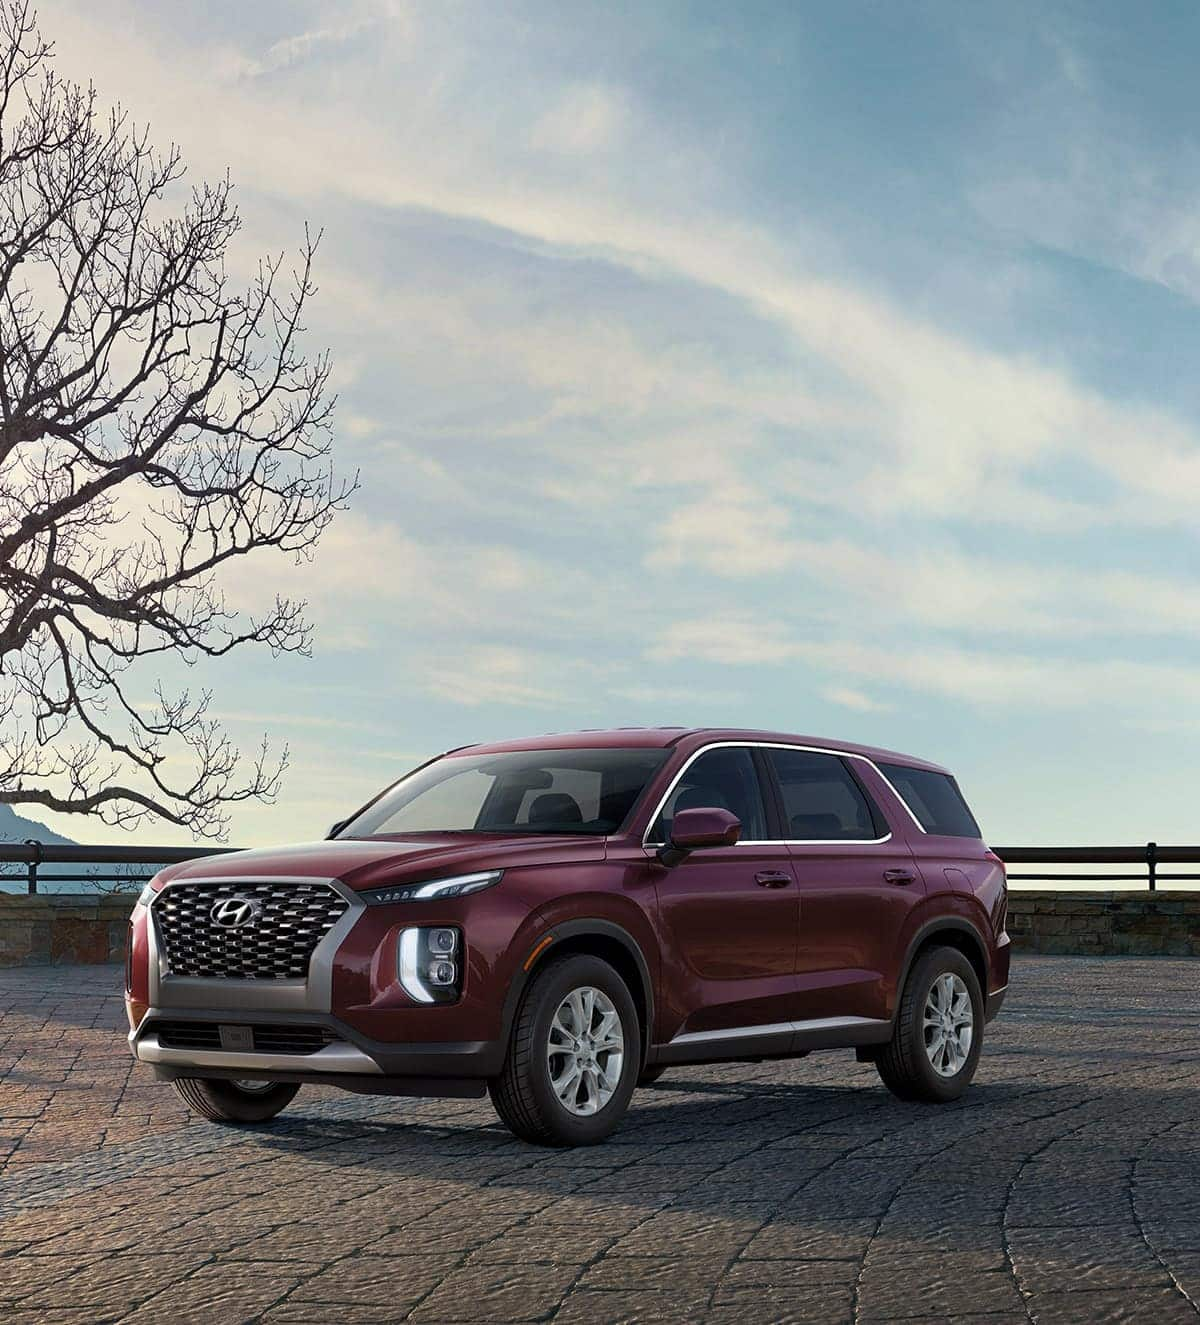 84 New When Will The 2020 Hyundai Palisade Be Available Reviews for When Will The 2020 Hyundai Palisade Be Available